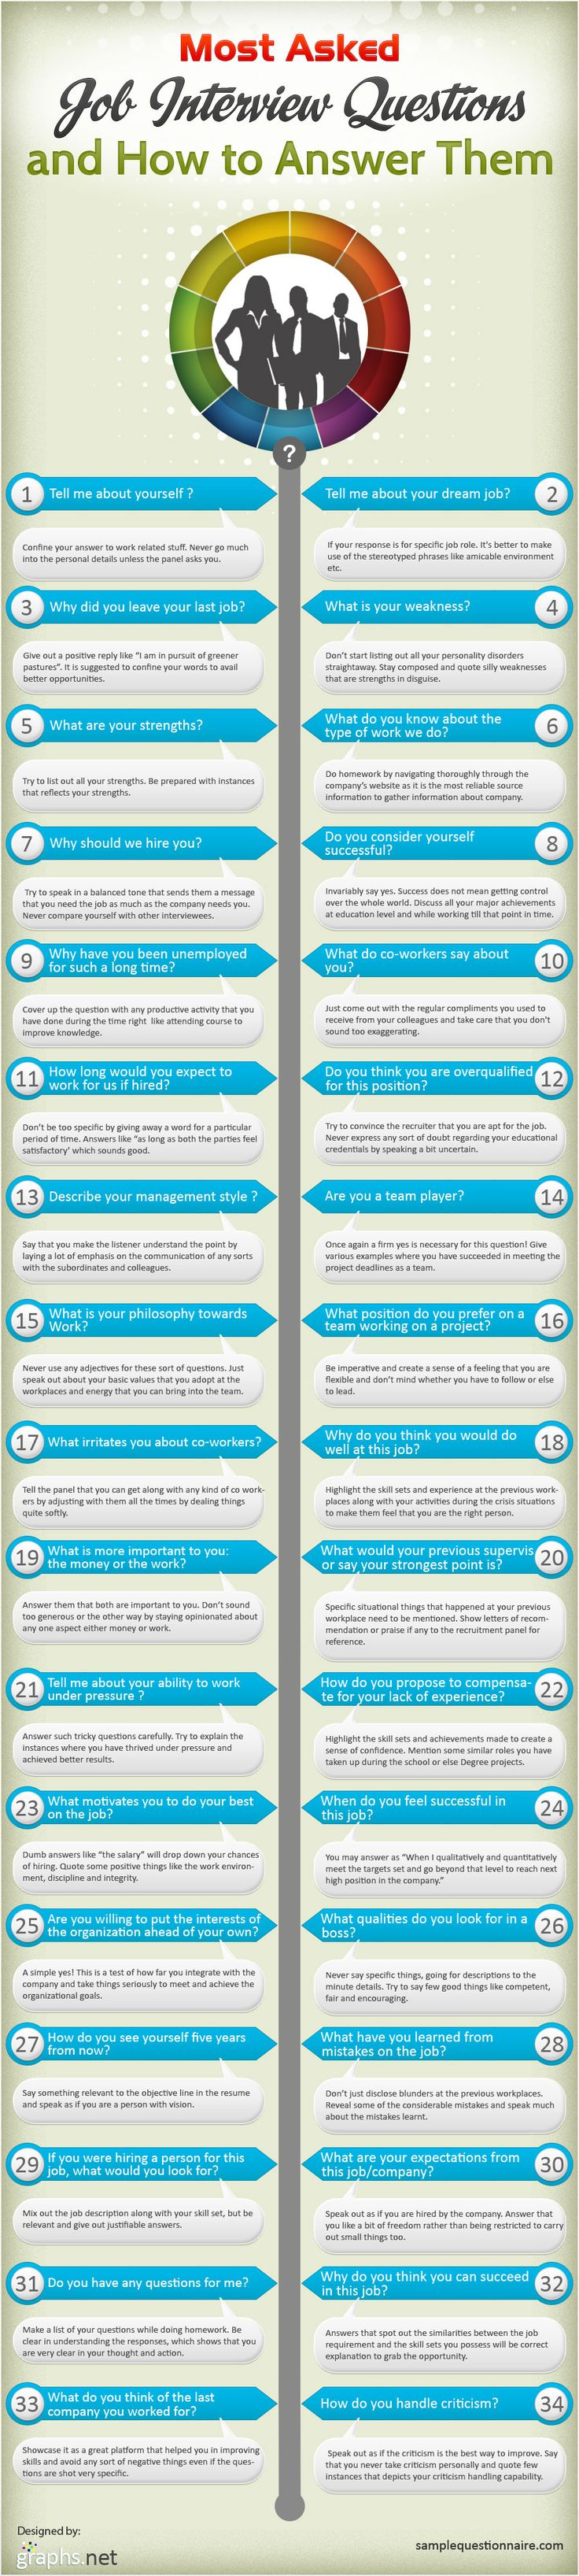 Captivating Here Are The Most Asked Job Interview Question And How To Answer Them.